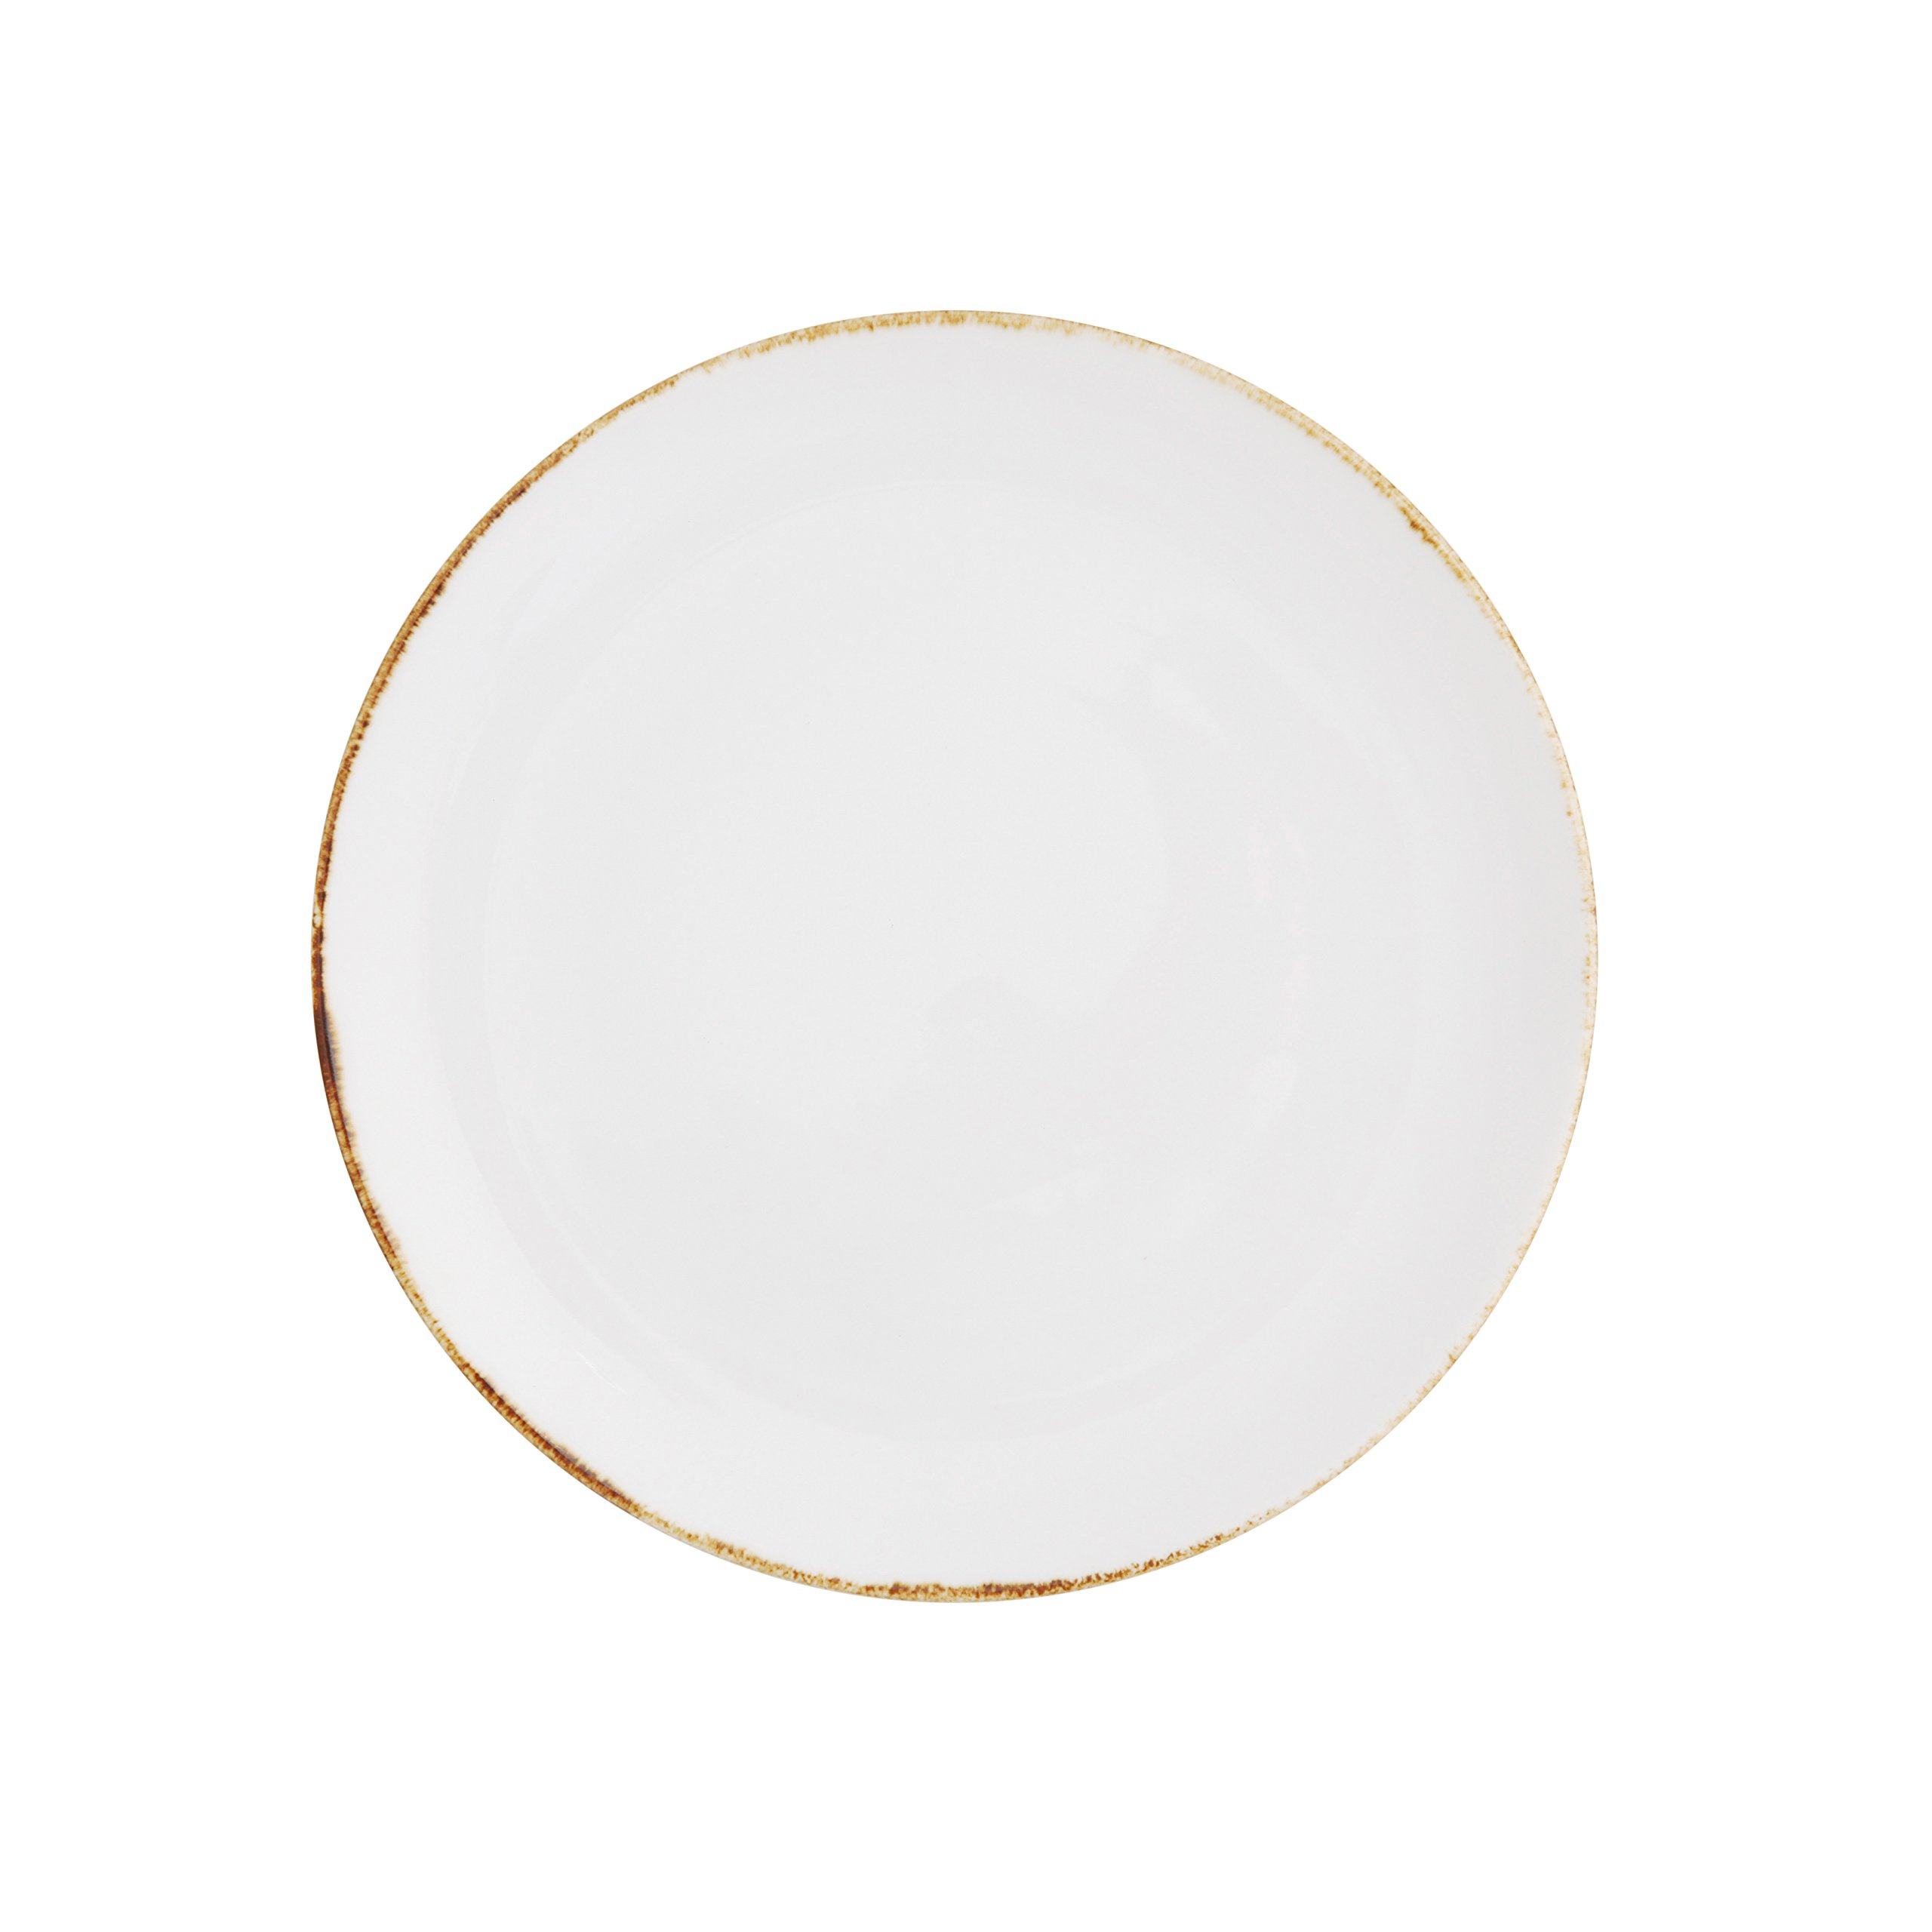 D&V Salt TechnoCeram Coupe Appetizer/Bread Plate (Set of 4), 6.5'', White